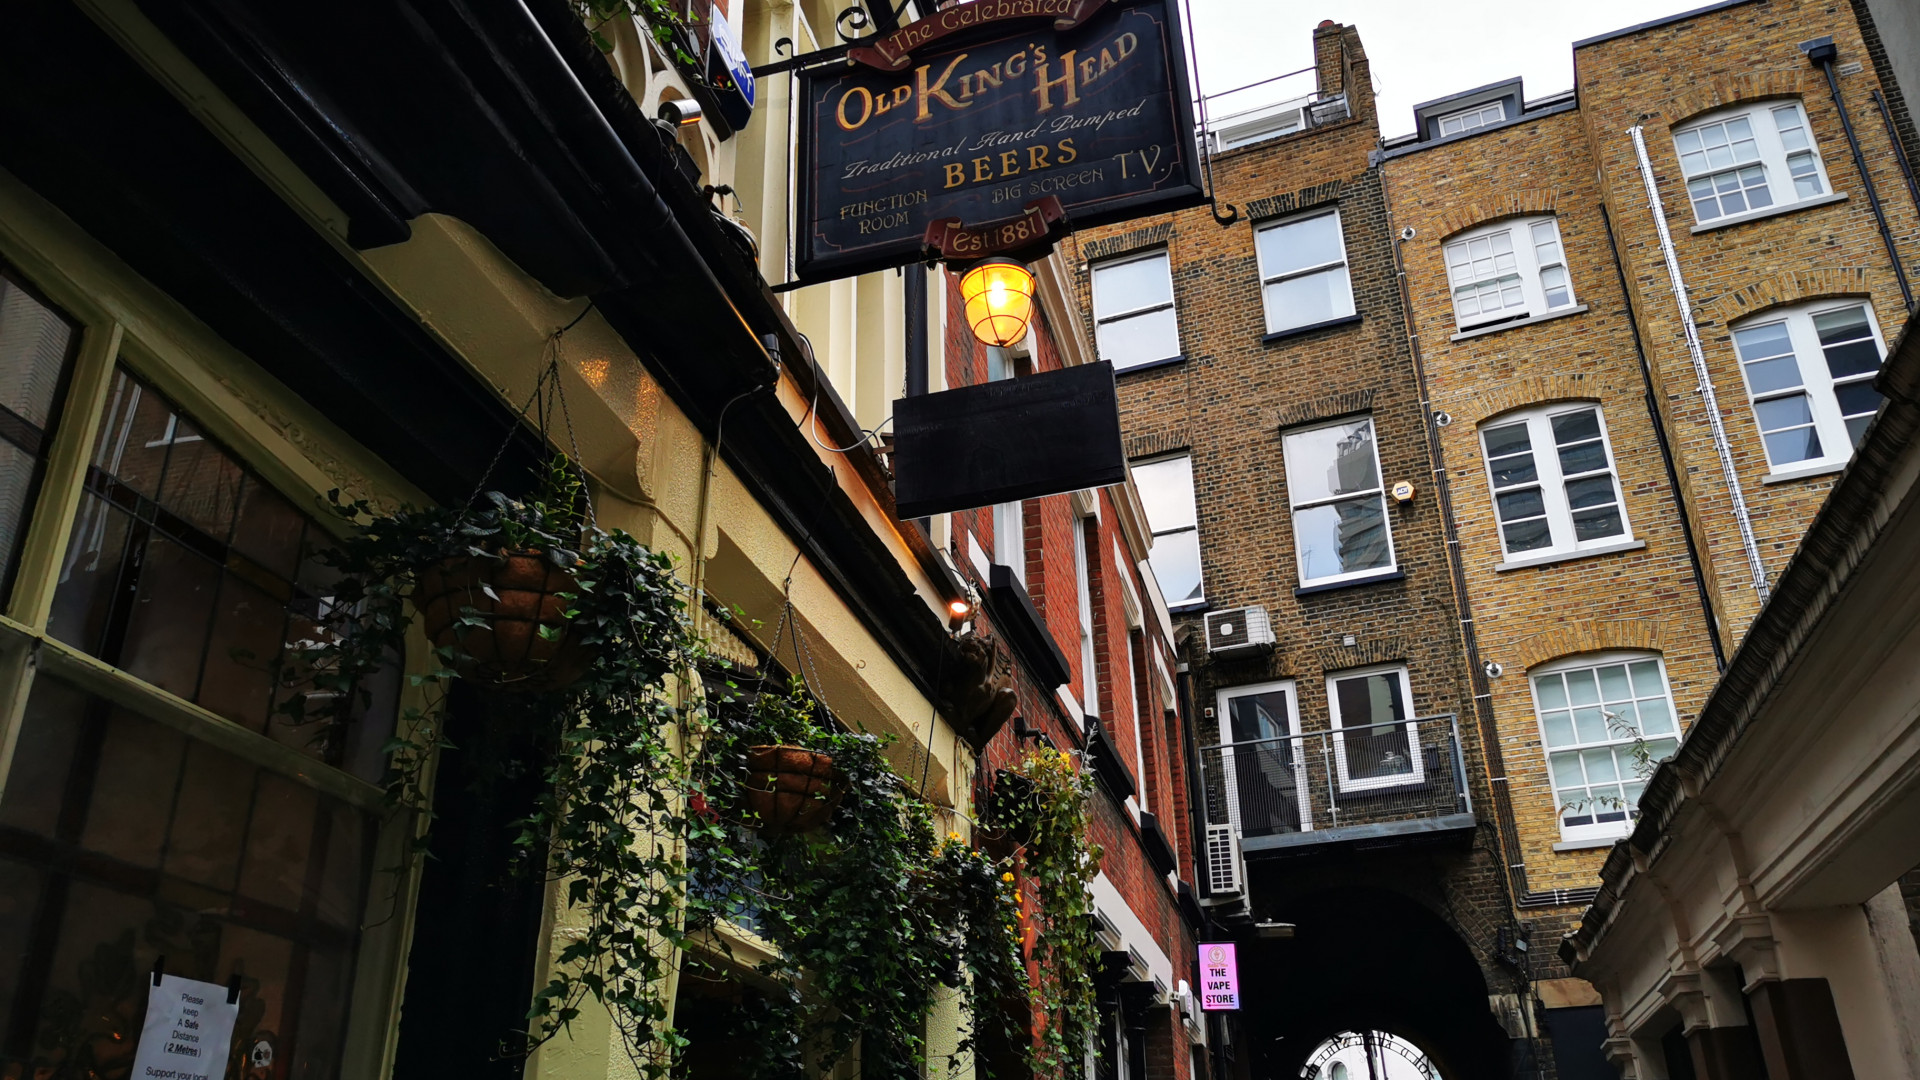 Old King's Head – London Bridge Pub